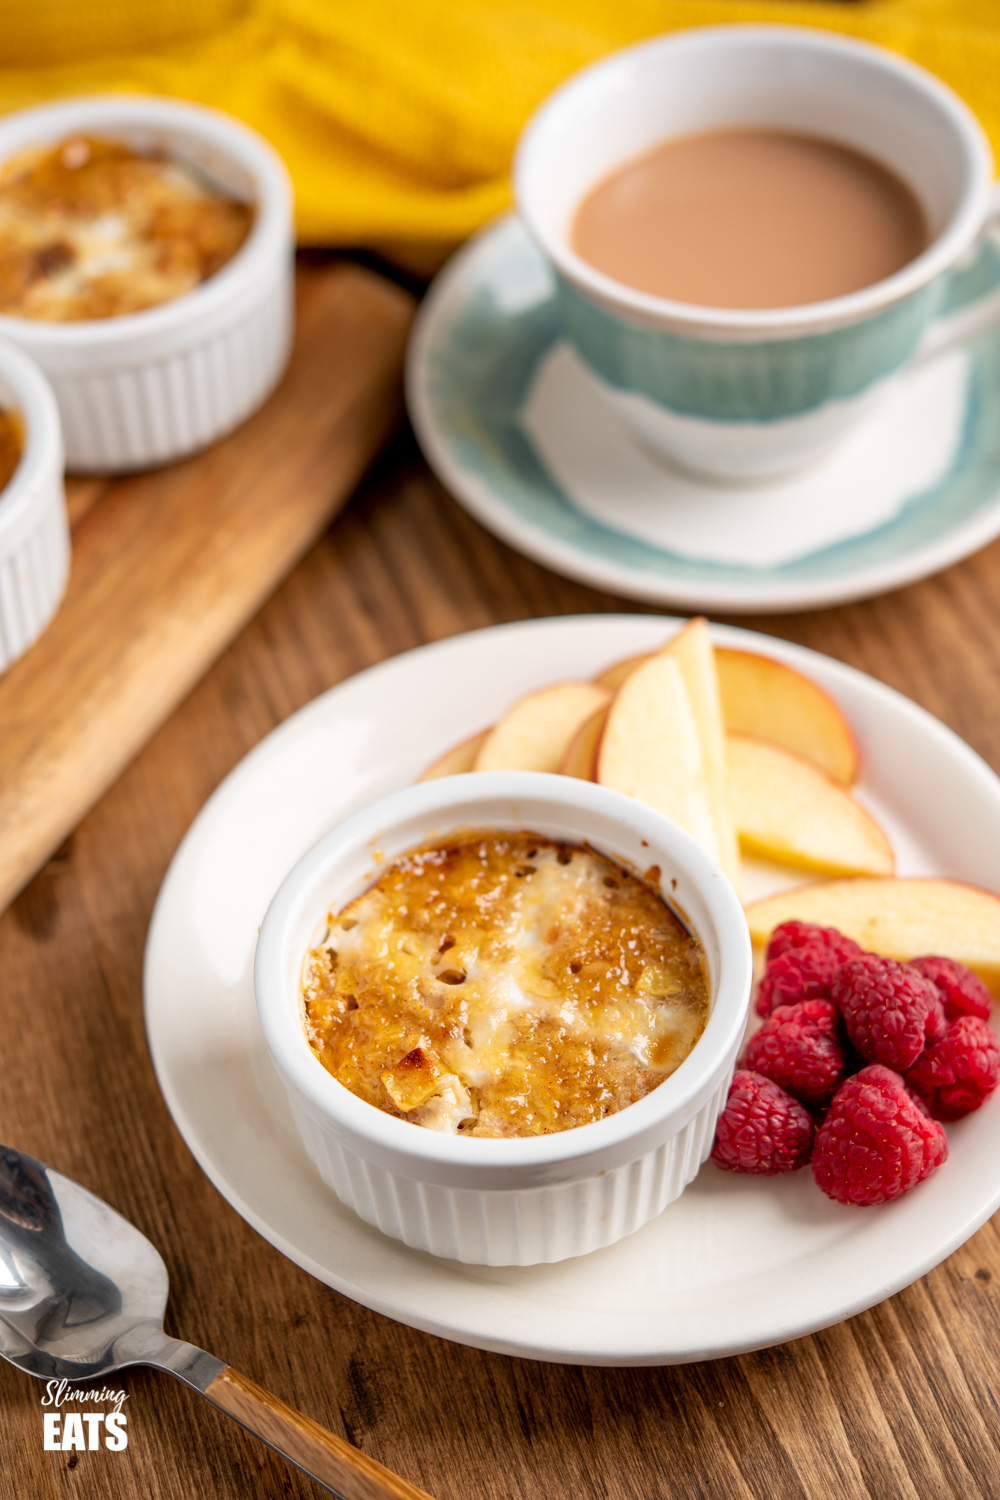 hot cross bun baked oats on white plate with raspberries, apple and cup of tea